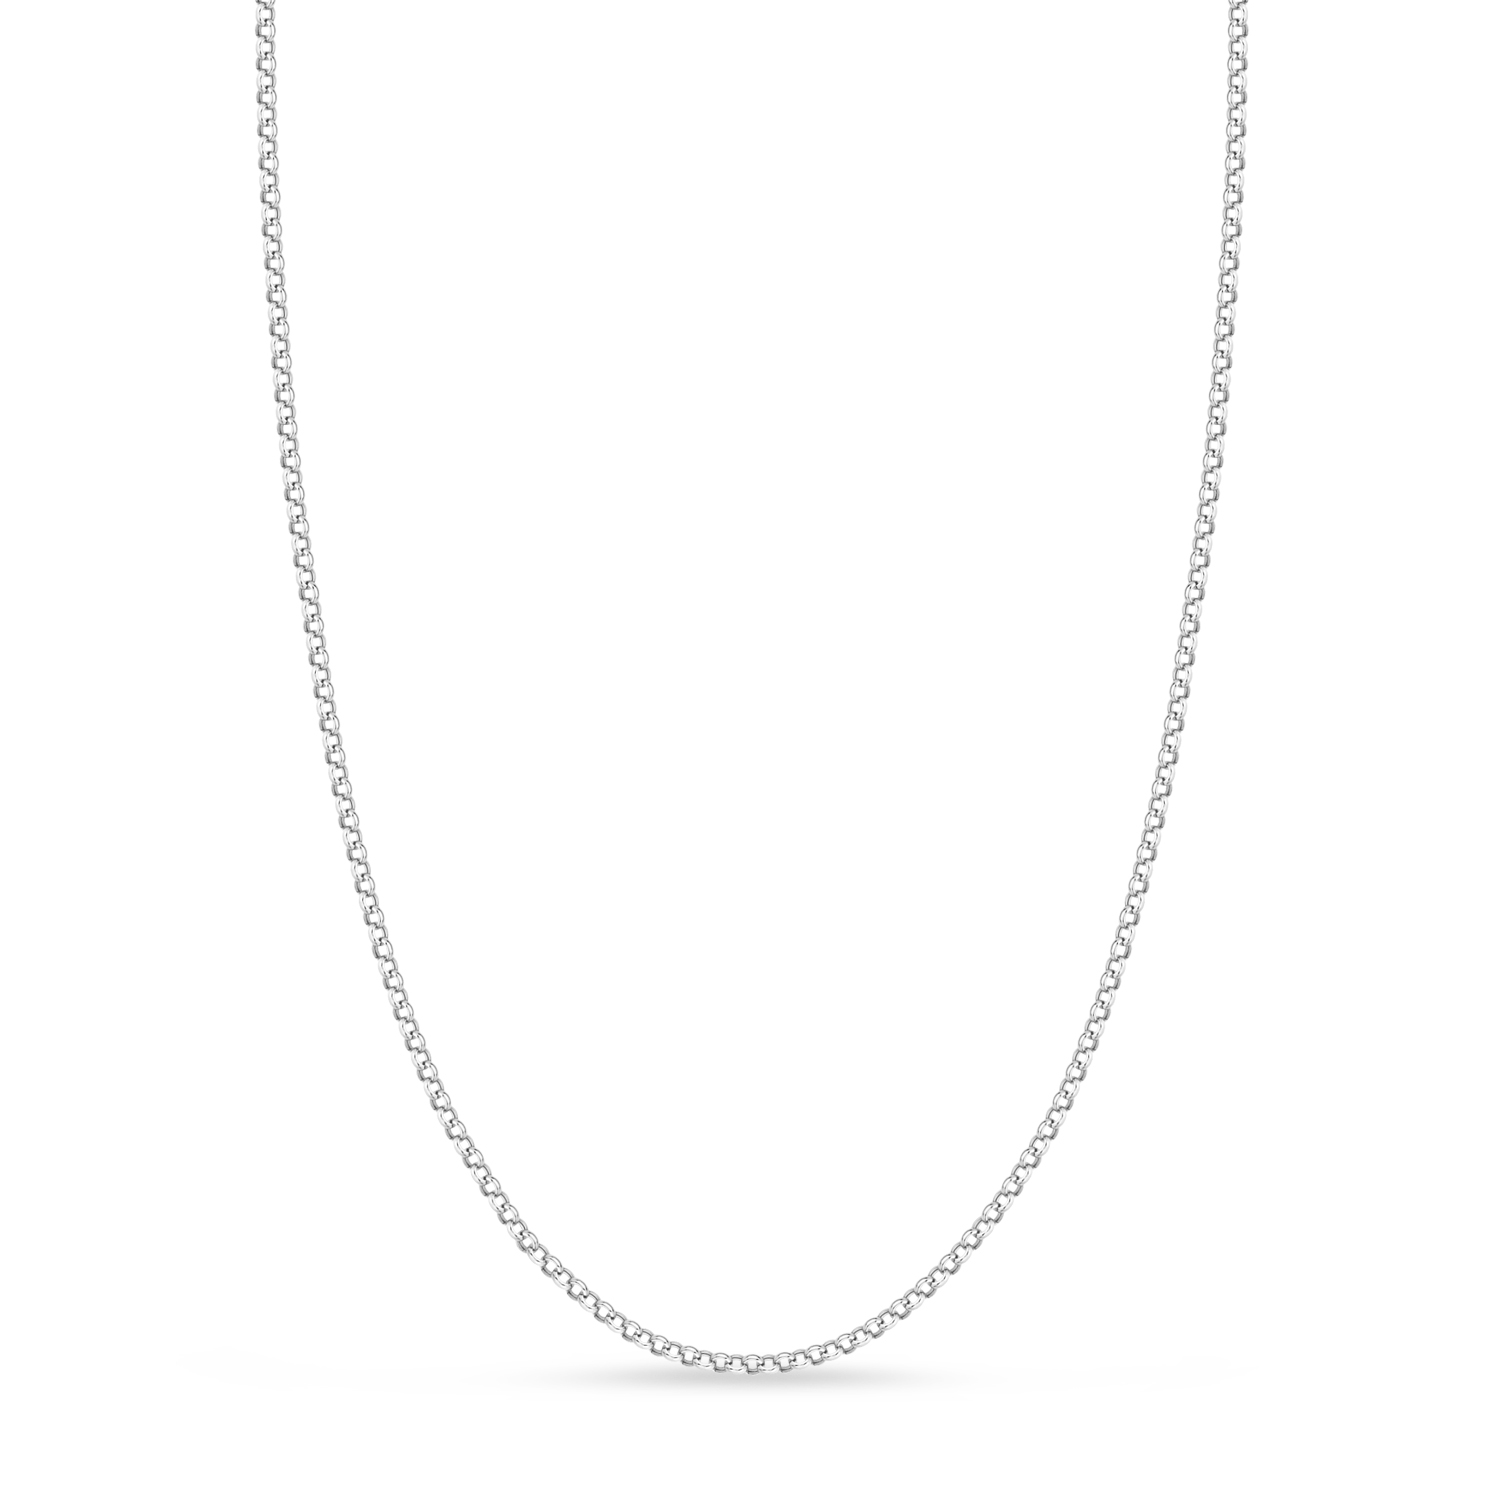 Hollow Rolo Chain Necklace 14k White Gold